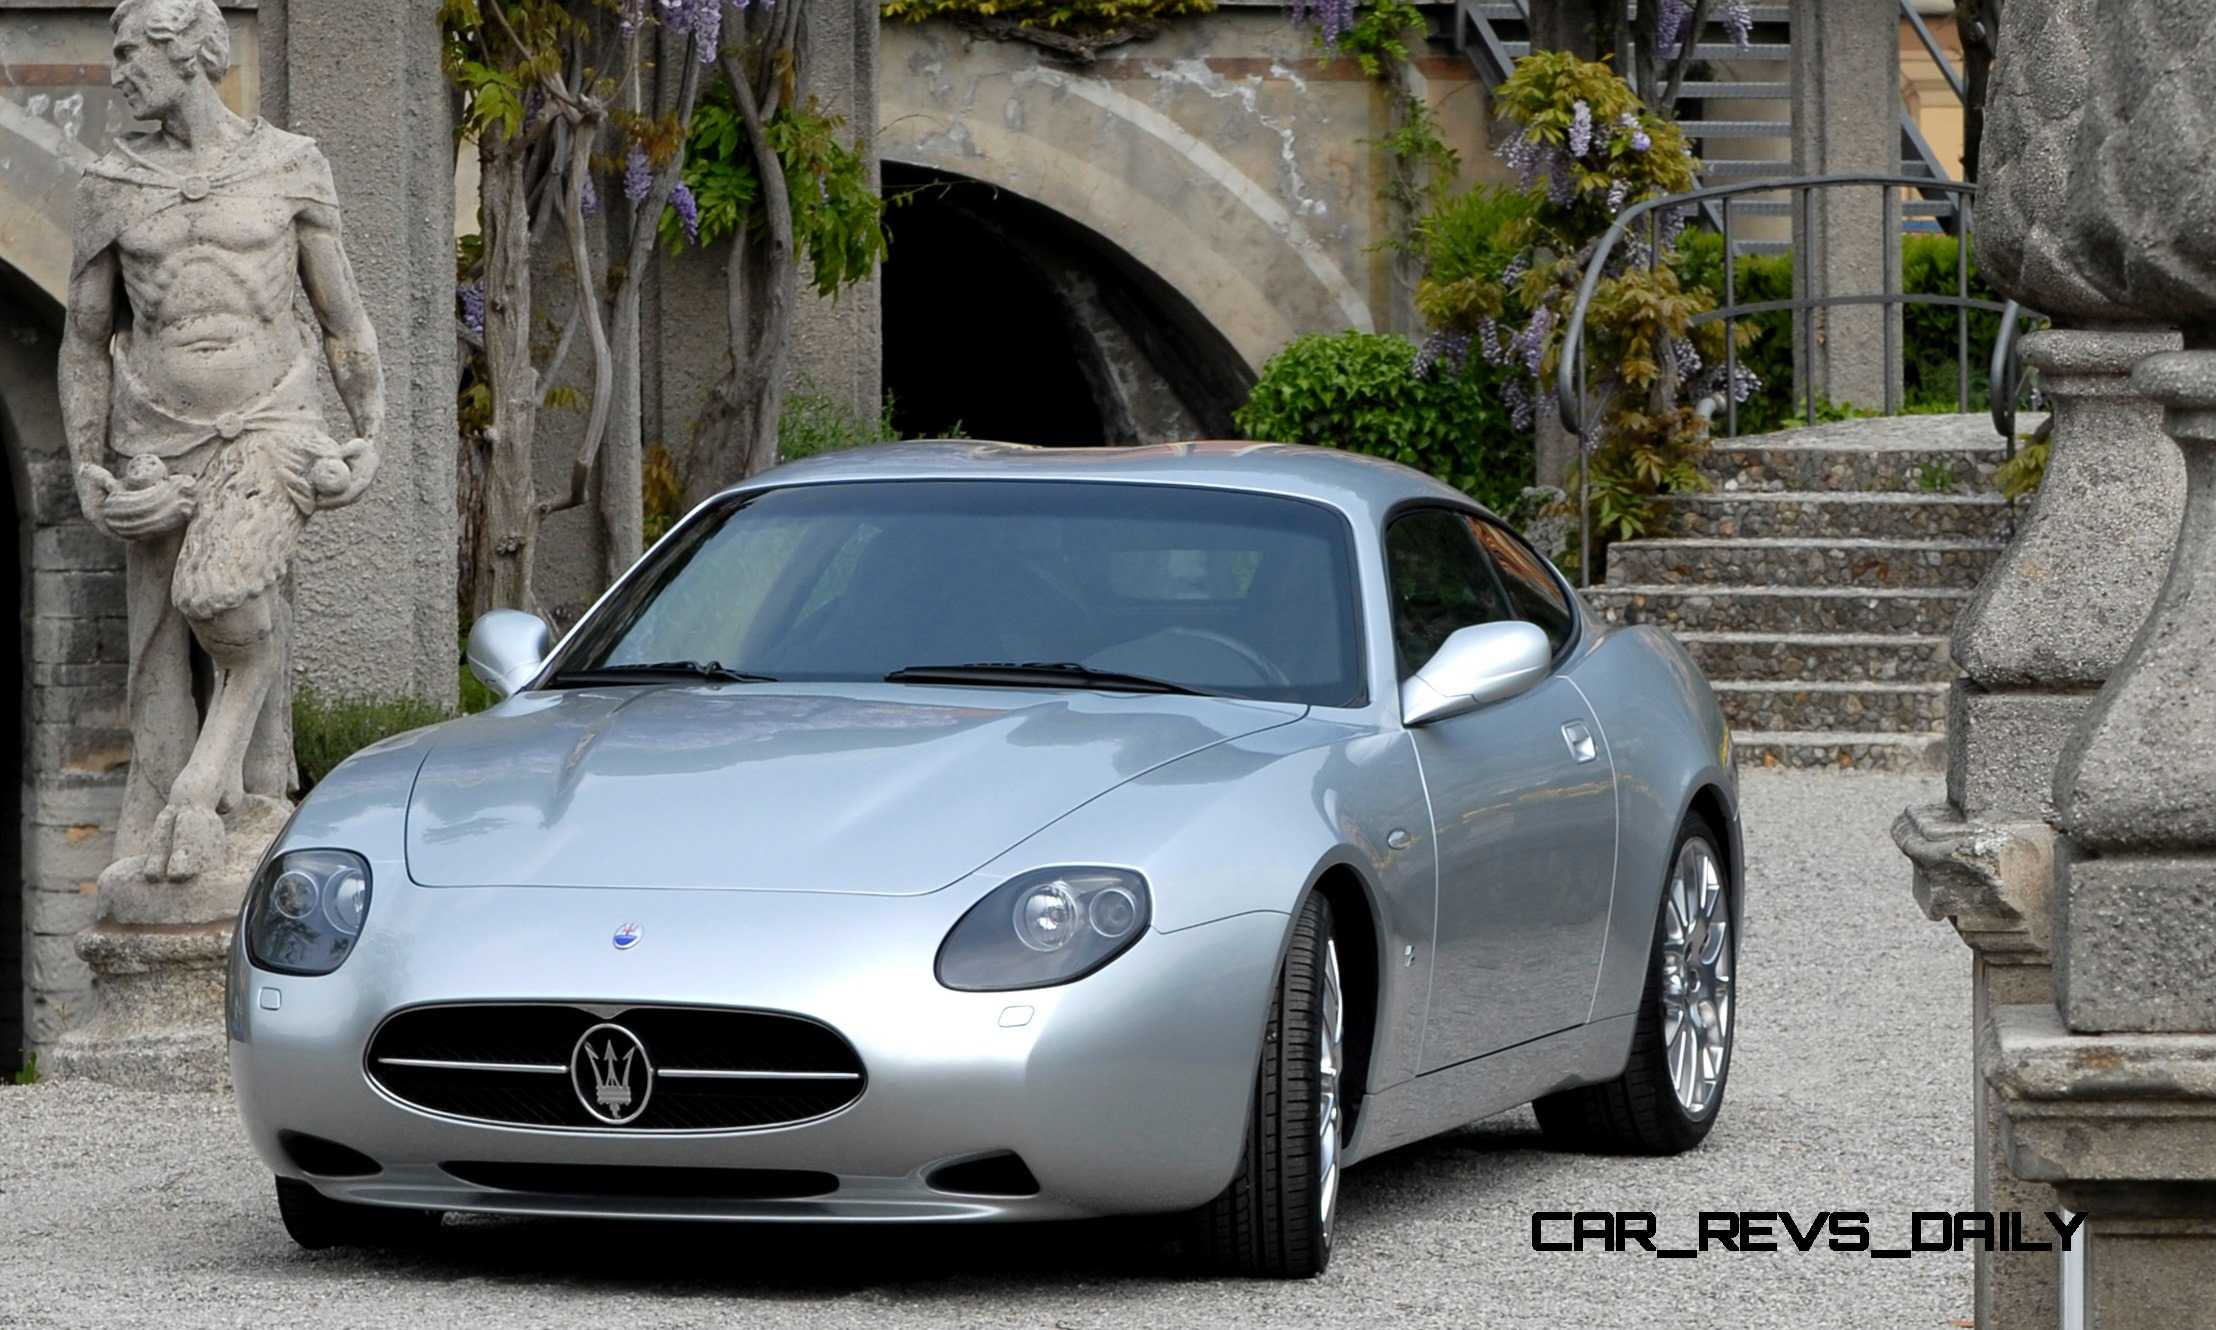 http://www.car-revs-daily.com/wp-content/uploads/2014/12/Concept-Flashback-2006-Maserati-GSZ-by-ZAGATO-8.jpg